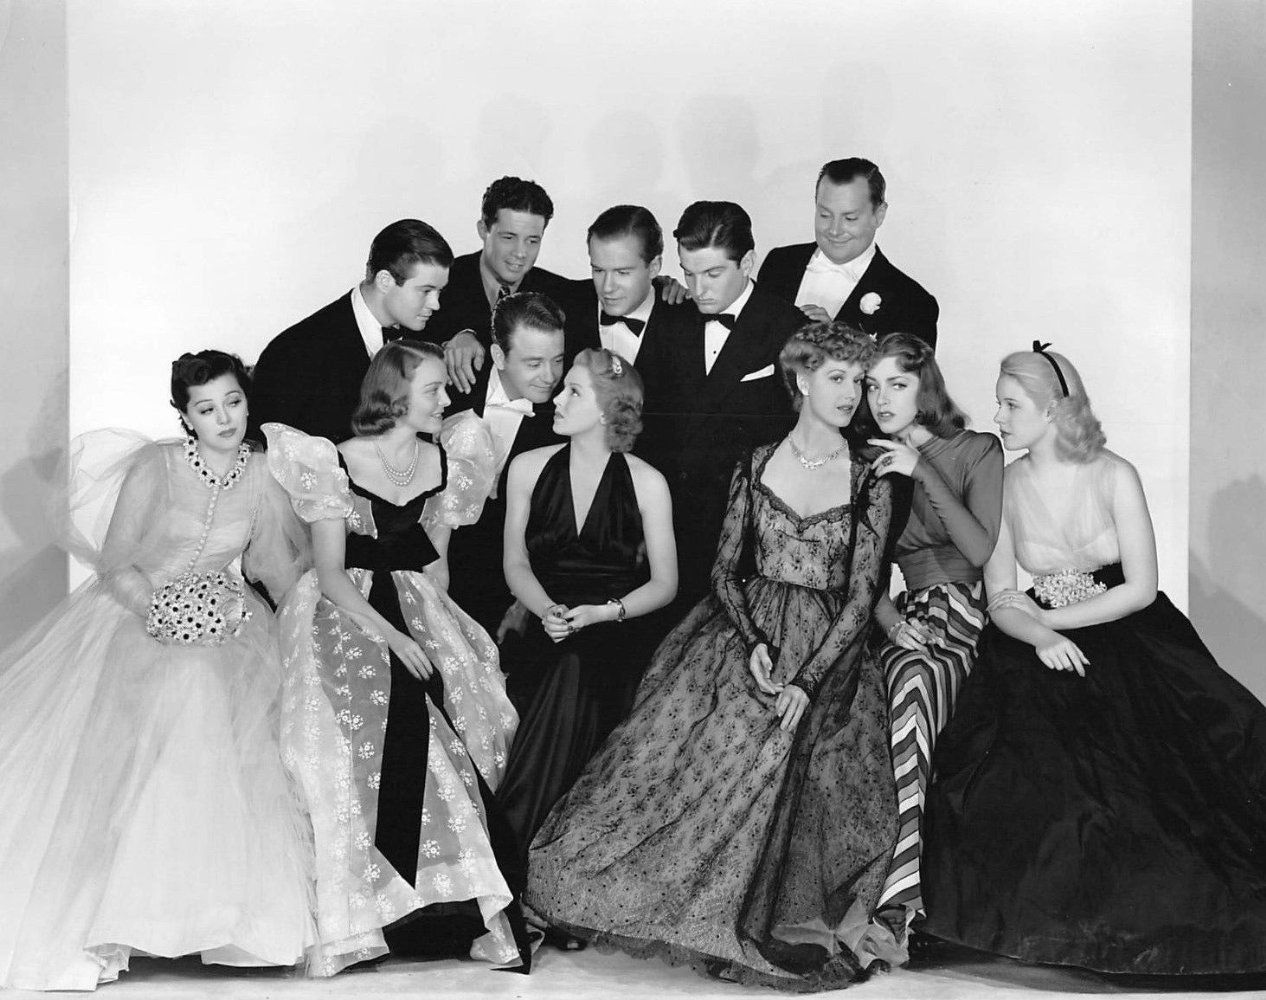 "The principal cast of  These Glamour Girls : Front row: Ann Rutherford (Mary Rose), Jane Bryan (Carol), Lew Ayres (Phil), Lana Turner (Jane), Anita Louise (Daphne), Marsha Hunt (Betty), Mary Beth Hughes (Ann). Second row: Tom Browne (Homer), Owen Davis, Jr. (Greg), Richard Carlson (Joe), Peter Lind Hayes (Skel), and Sumner Getchell (""Blimpy""). Missing: Tom Collins (Tommy)."